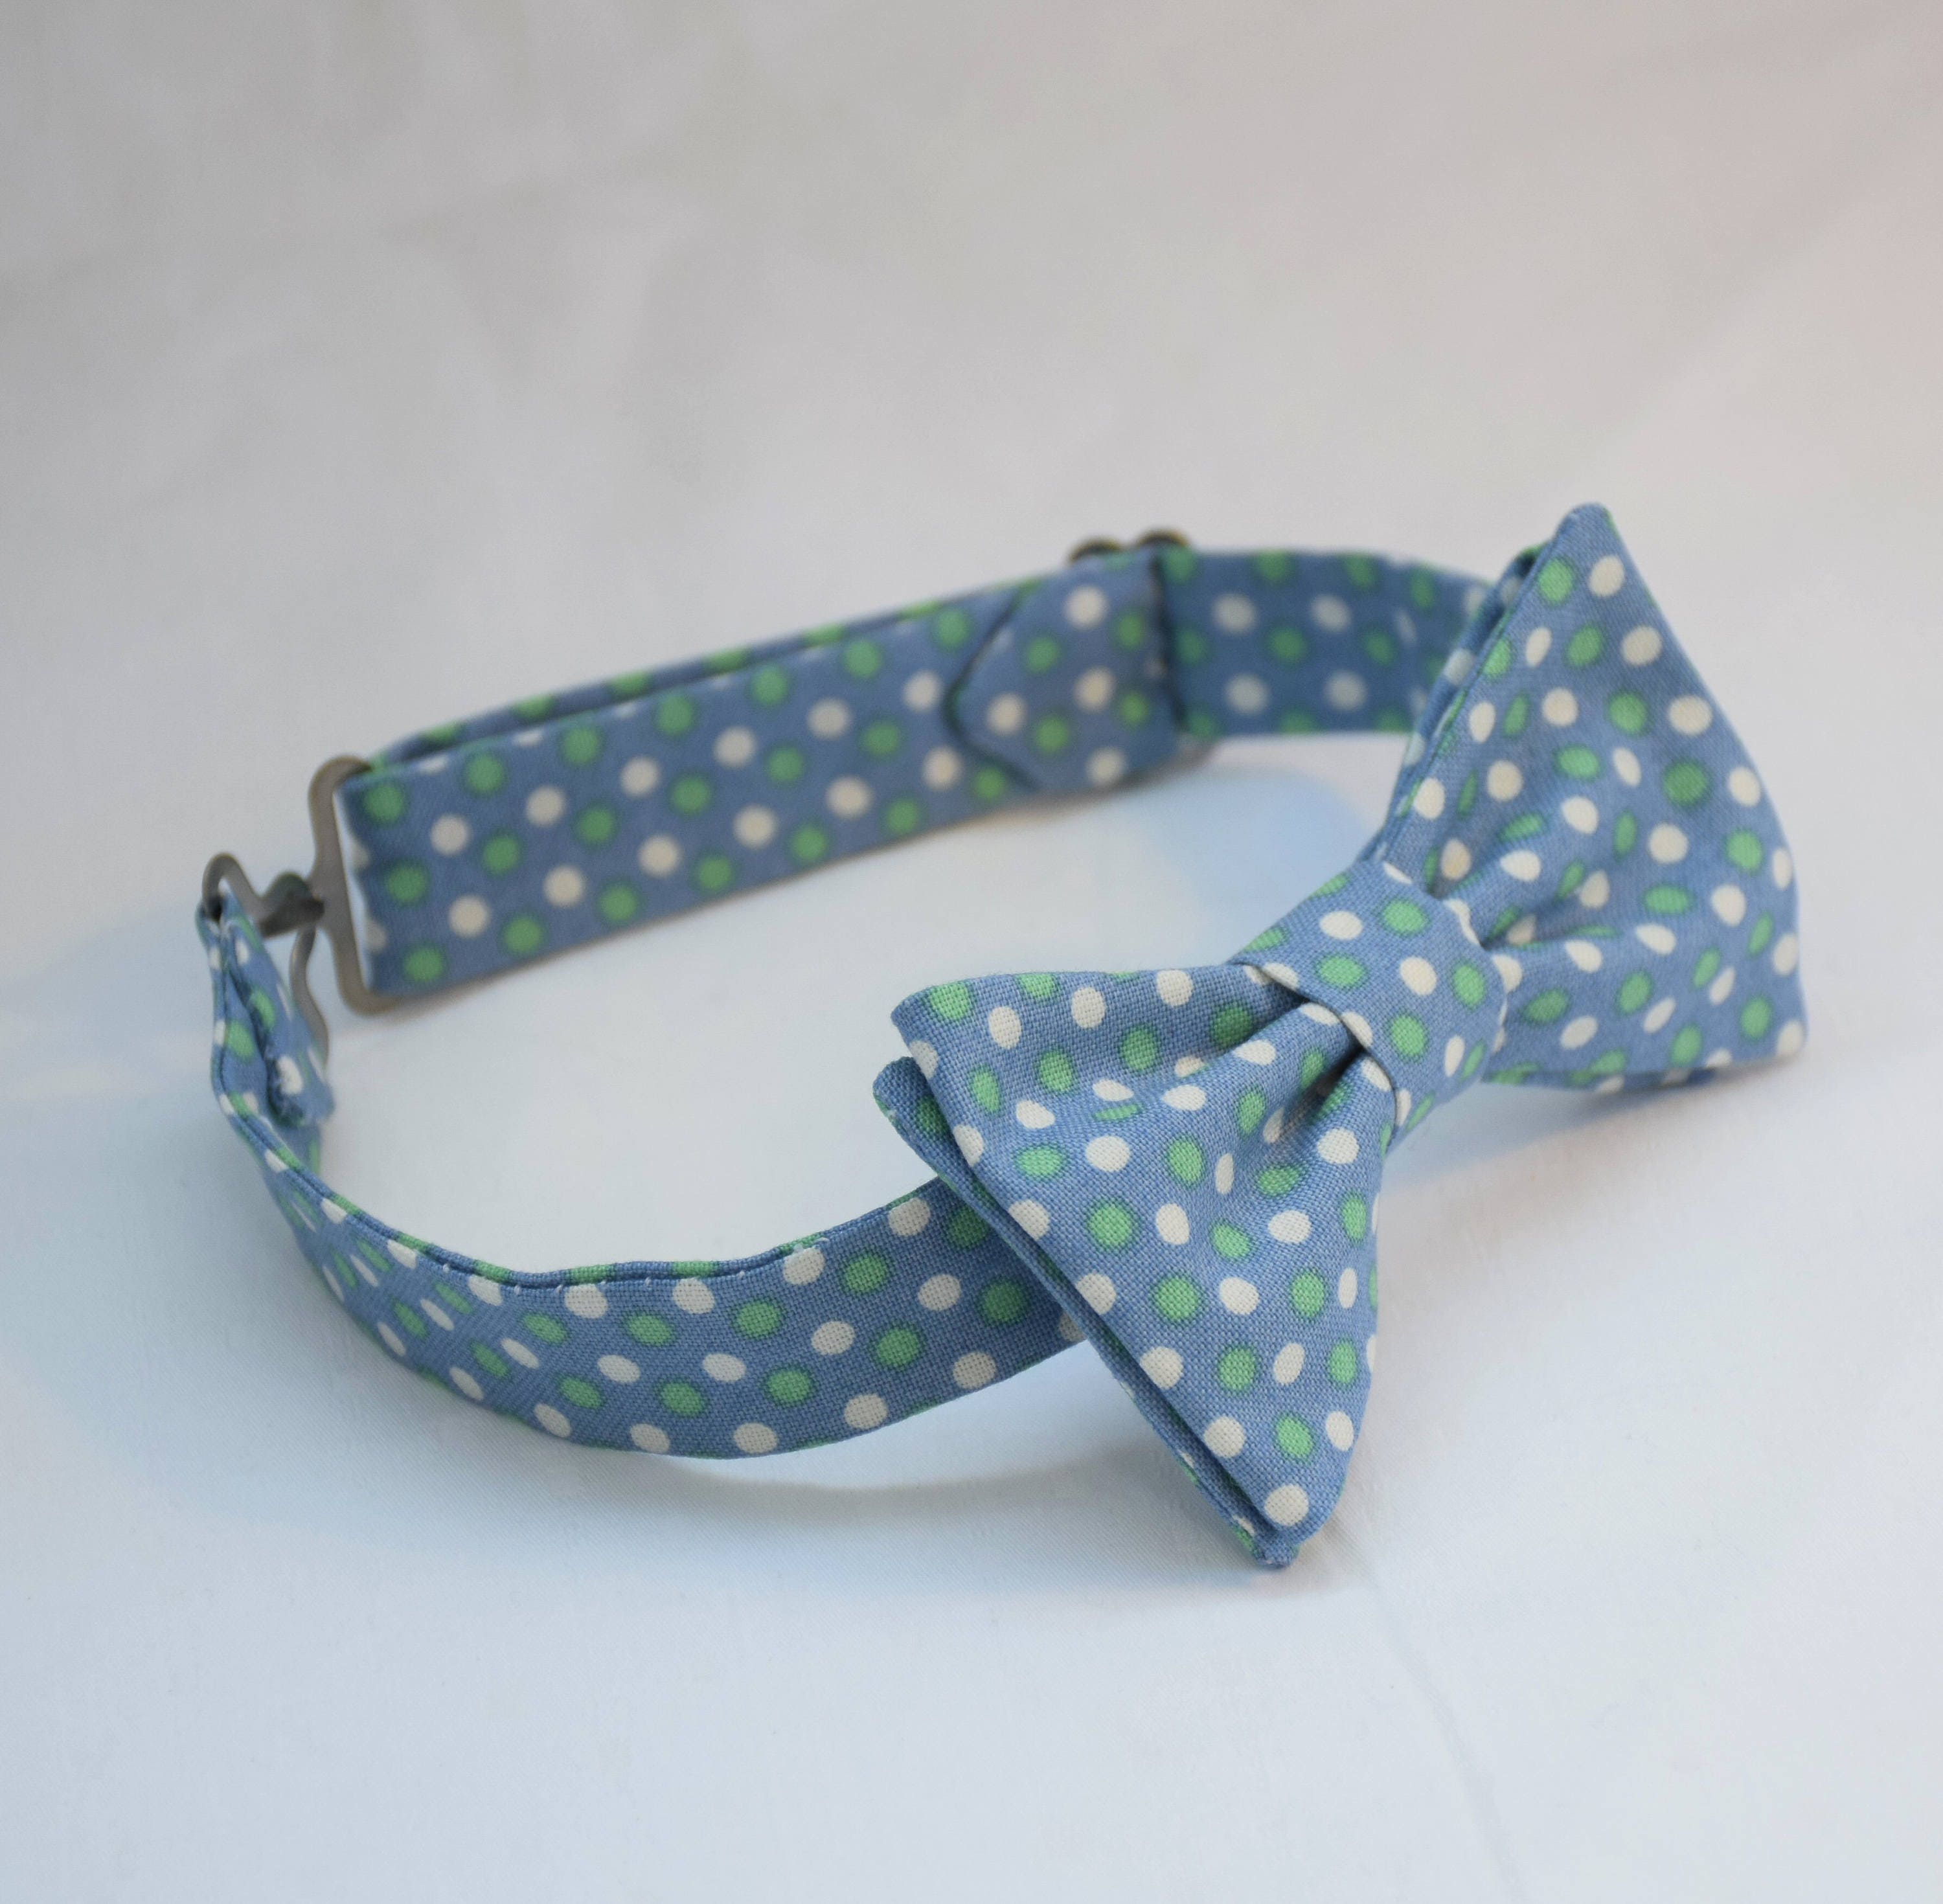 eb350911ed7f Boy's pre-tied Bow Tie, light blue/white/green dots, Easter bow tie,  wedding accessory, toddler bow tie, pastel dots child bow tie, LAST ONE